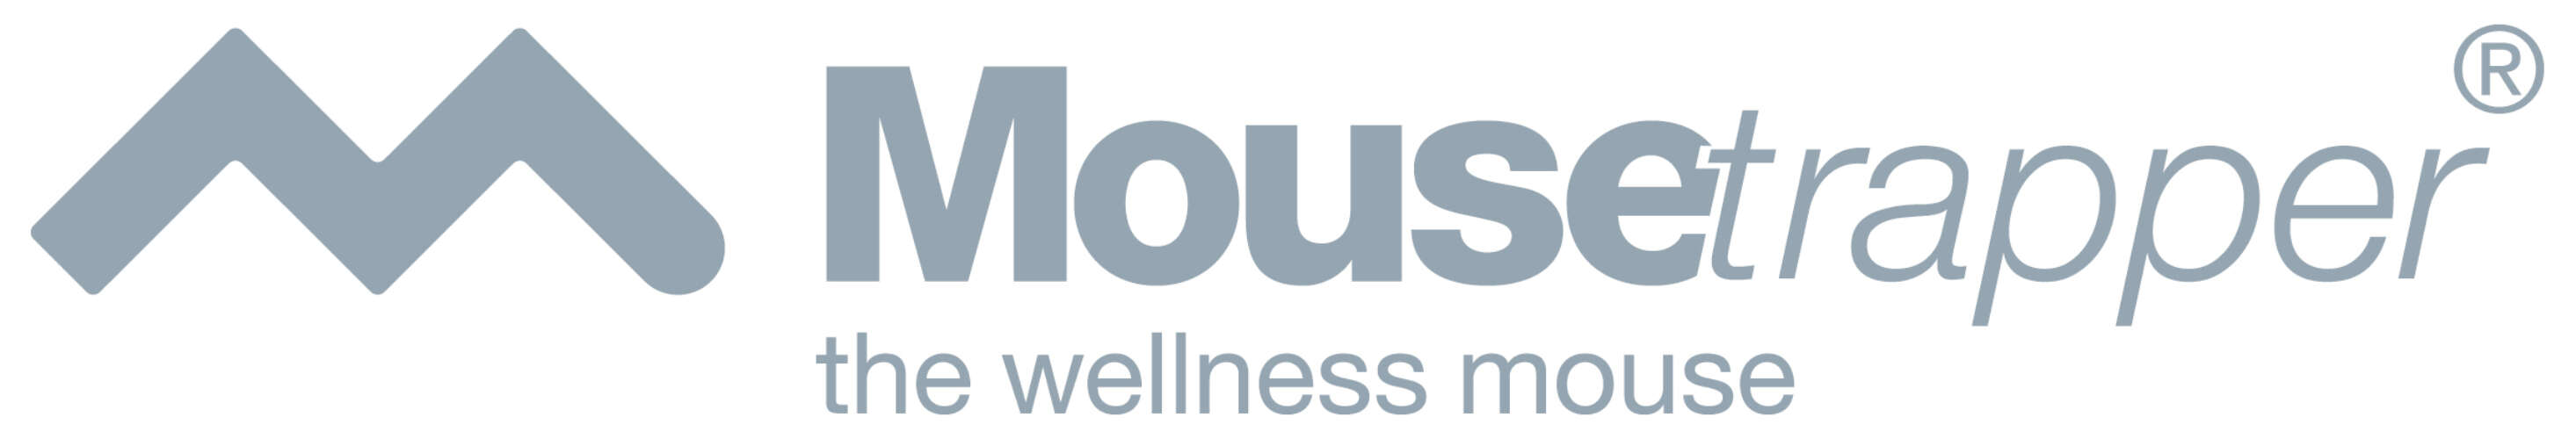 Mousetrapper wellness